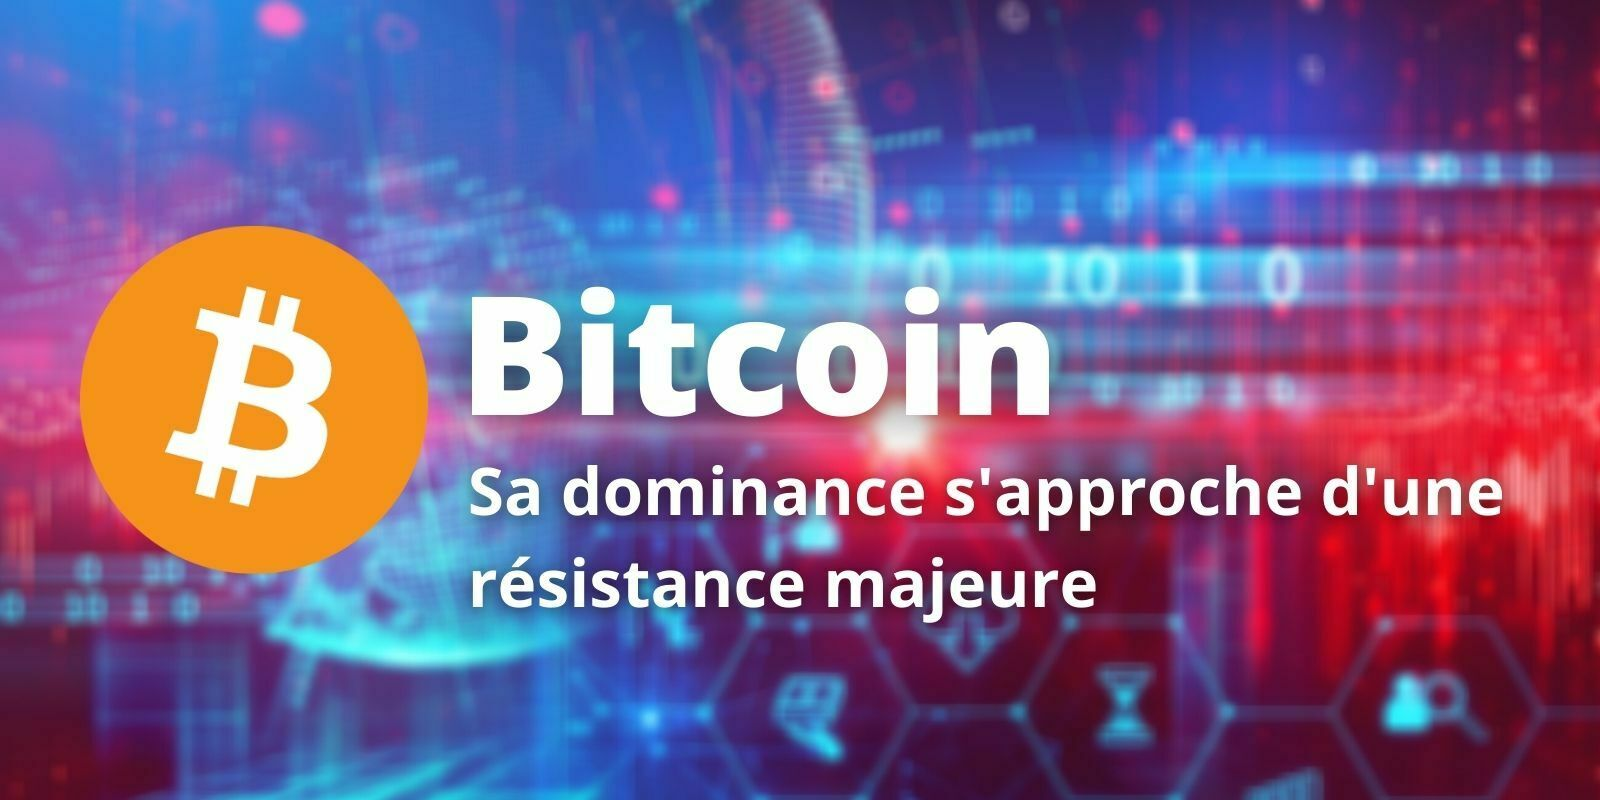 Dominance du Bitcoin (BTC) - À quand l'allègement du leadership ?